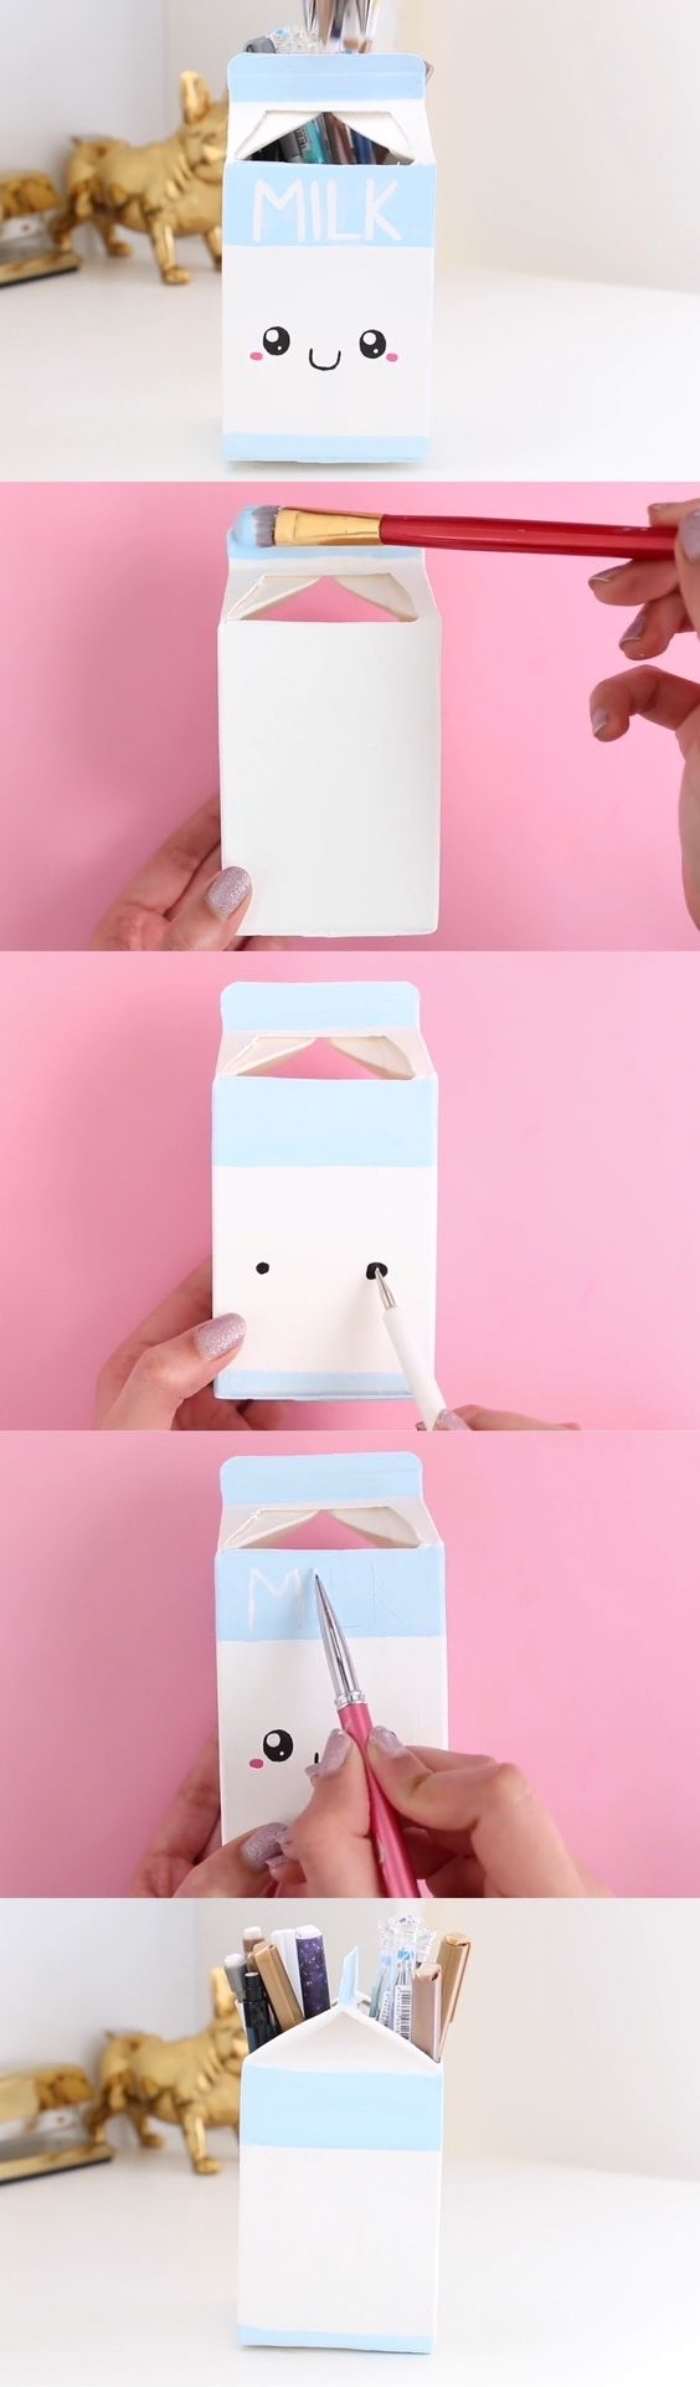 milk carton, turned into a pencil holder, hands on activities, step by step, diy tutorial